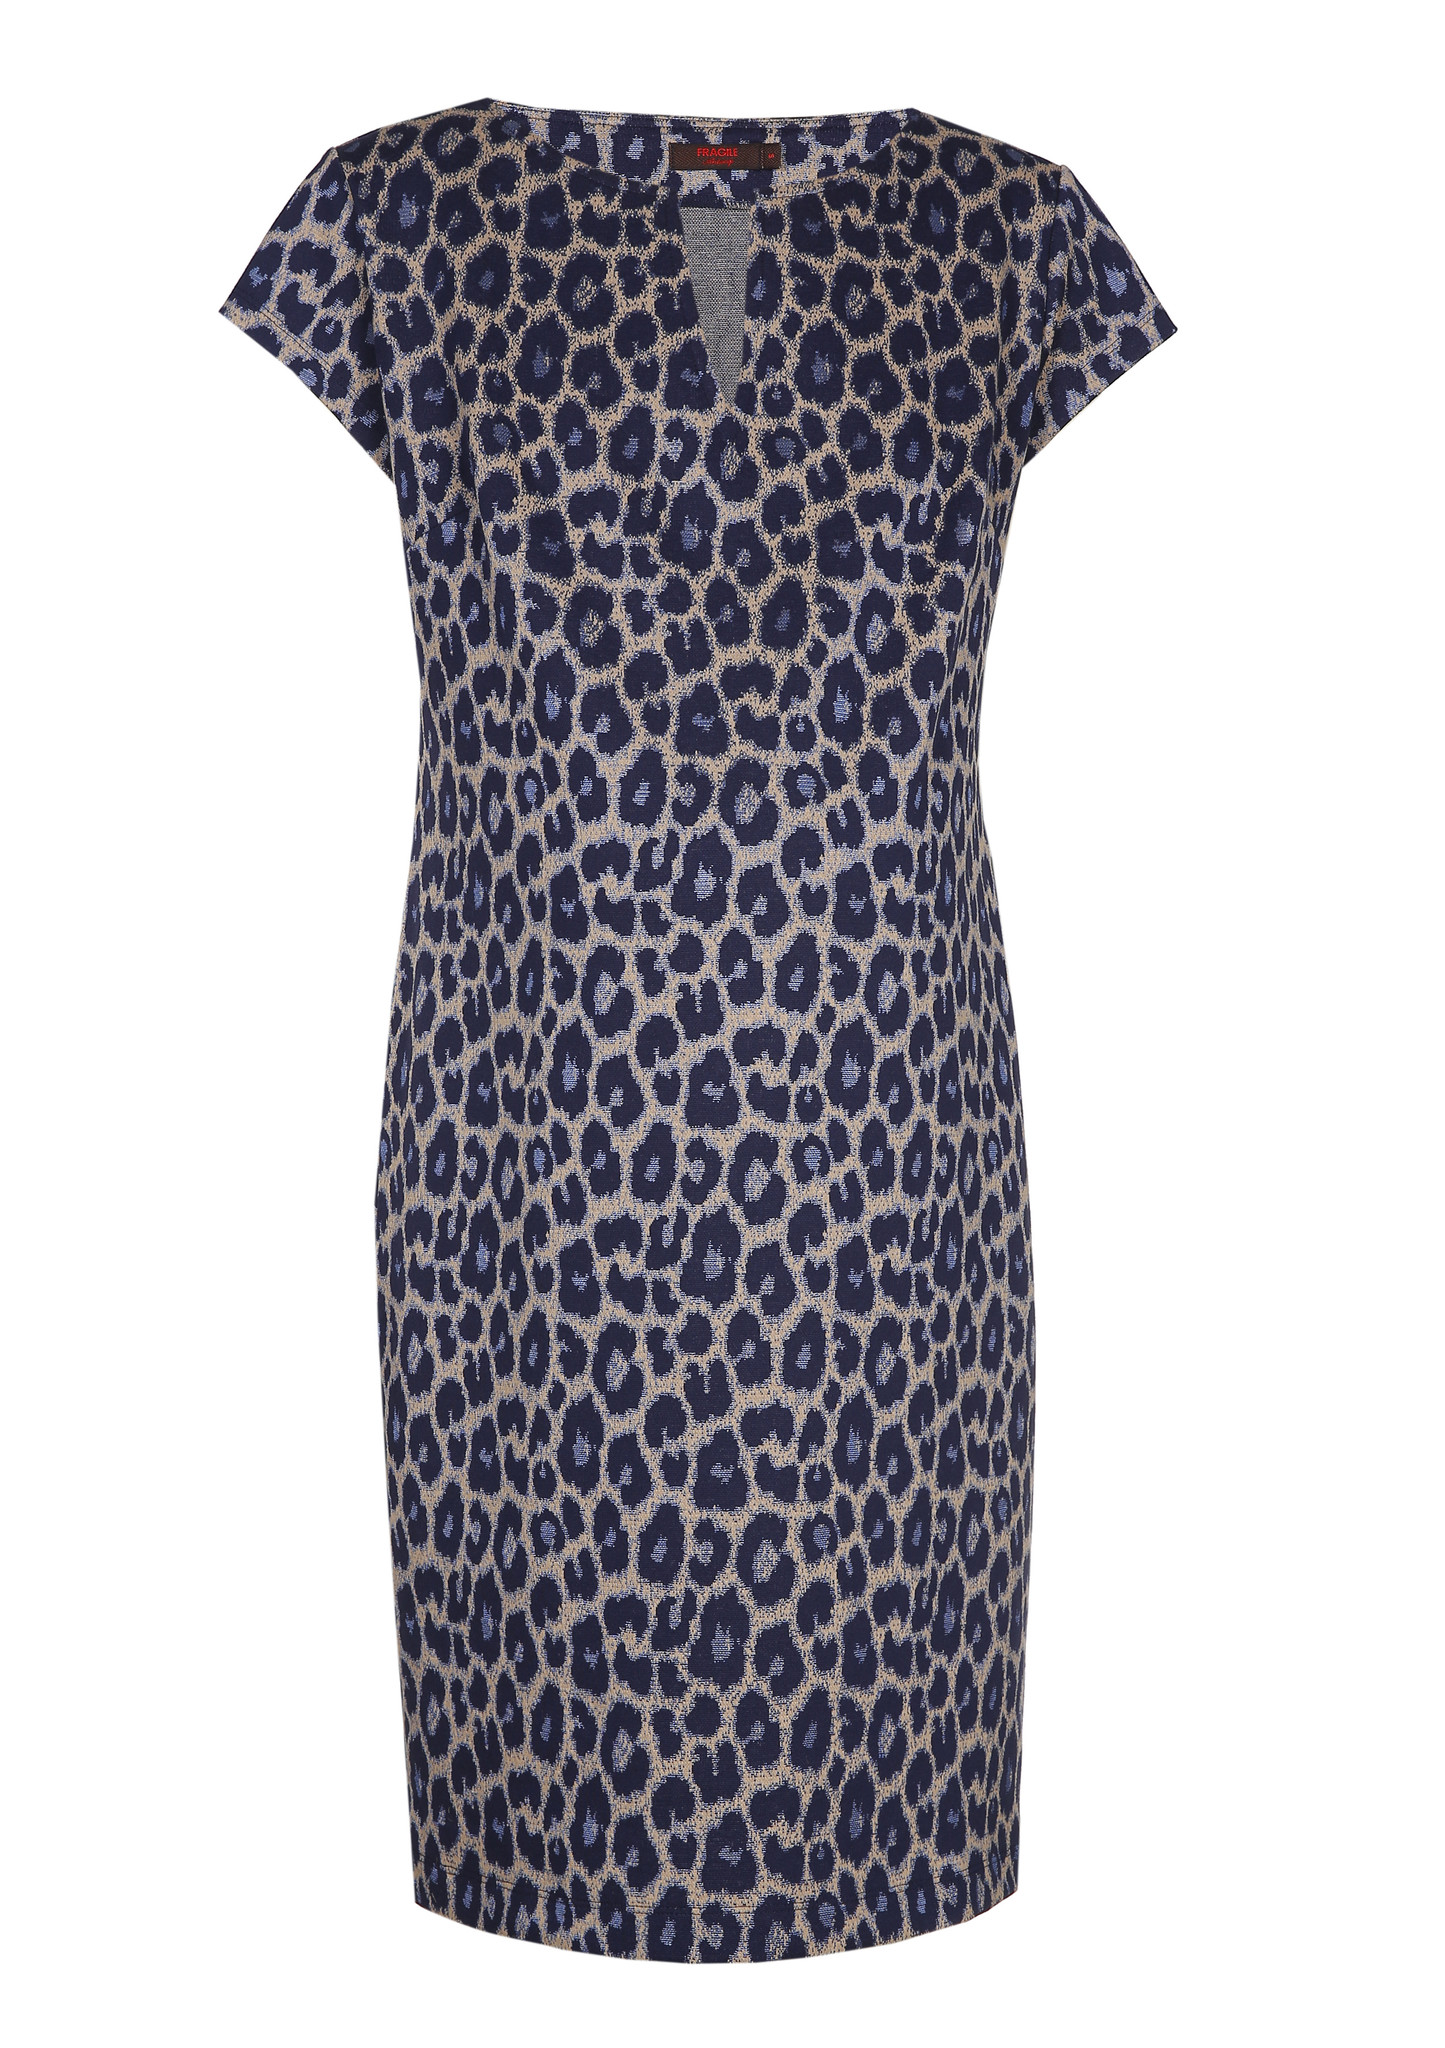 Slim tunic short sleeves - navy animal-2